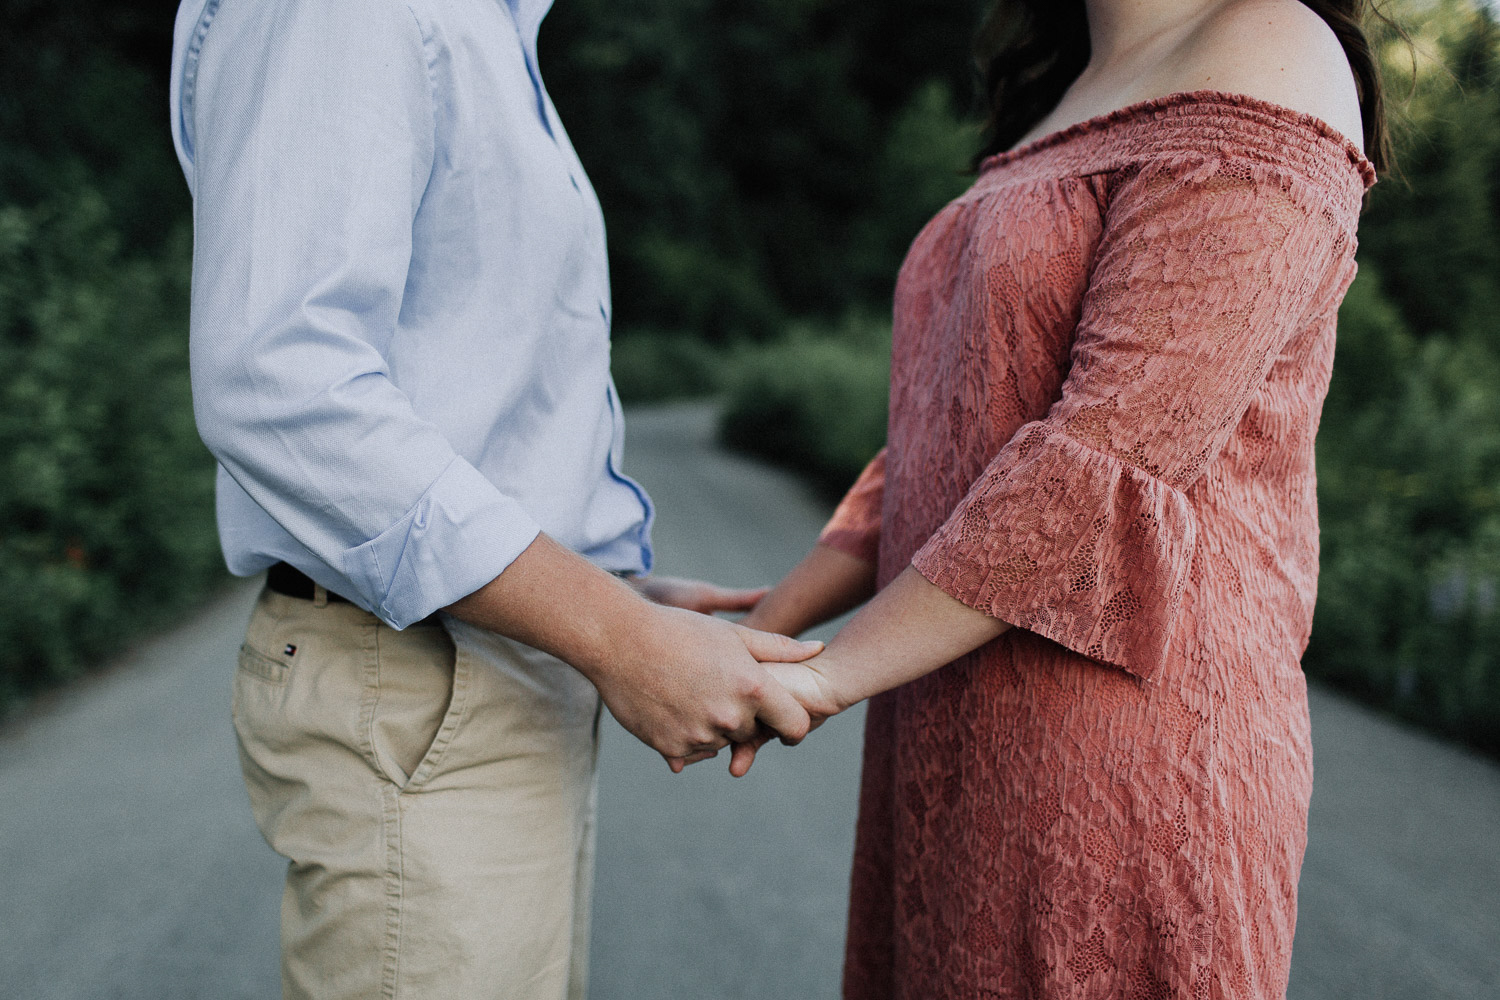 Image of couple's hands